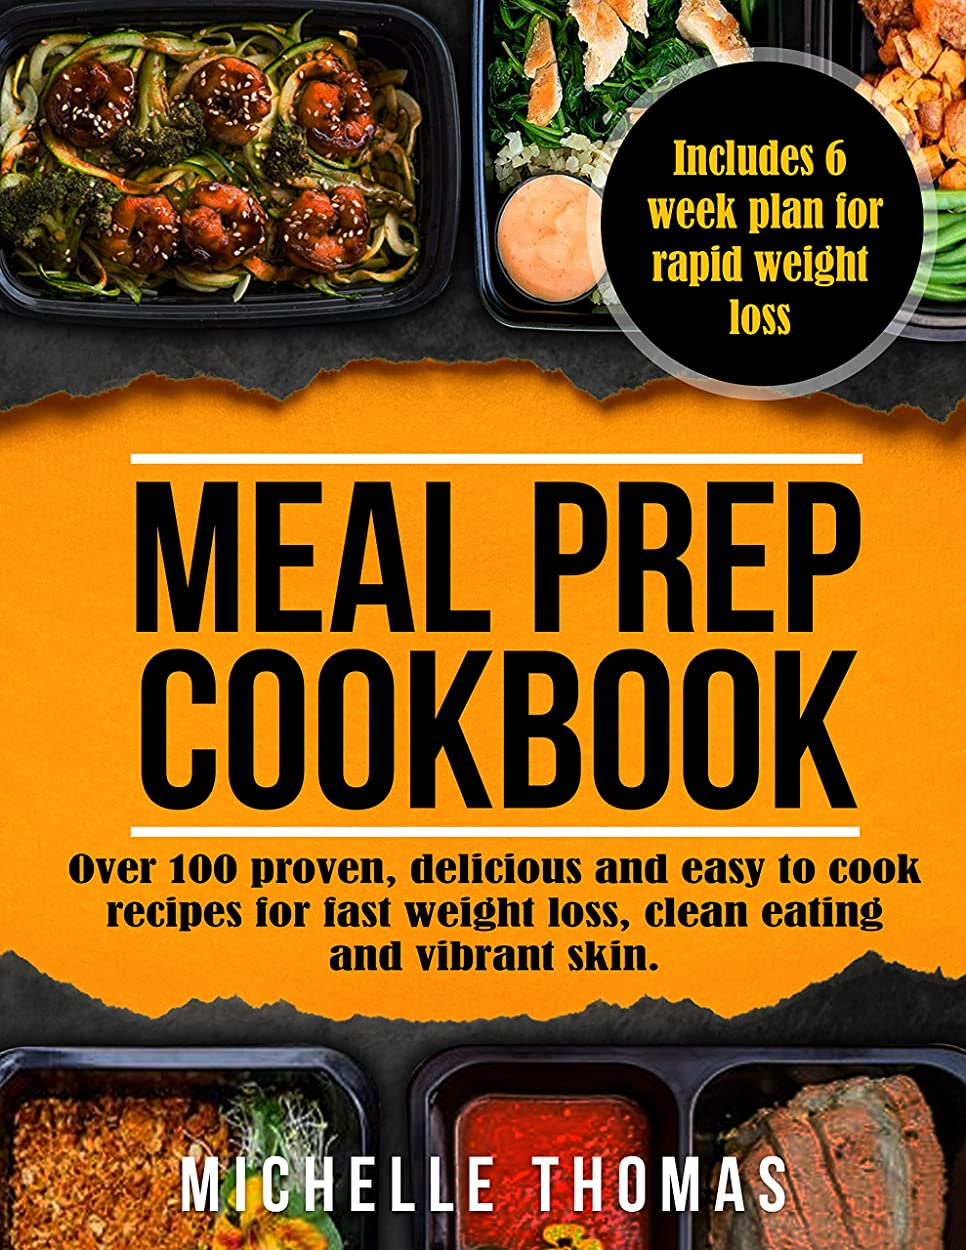 見分ける即席線Meal Prep Cookbook: Over 100 Proven, Delicious And Easy To Cook Recipes For Fast Weight Loss, Clean Eating And Vibrant Skin. (Healthy, Low Carb, Plan Ahead, Batch Cooking Recipes) (English Edition)